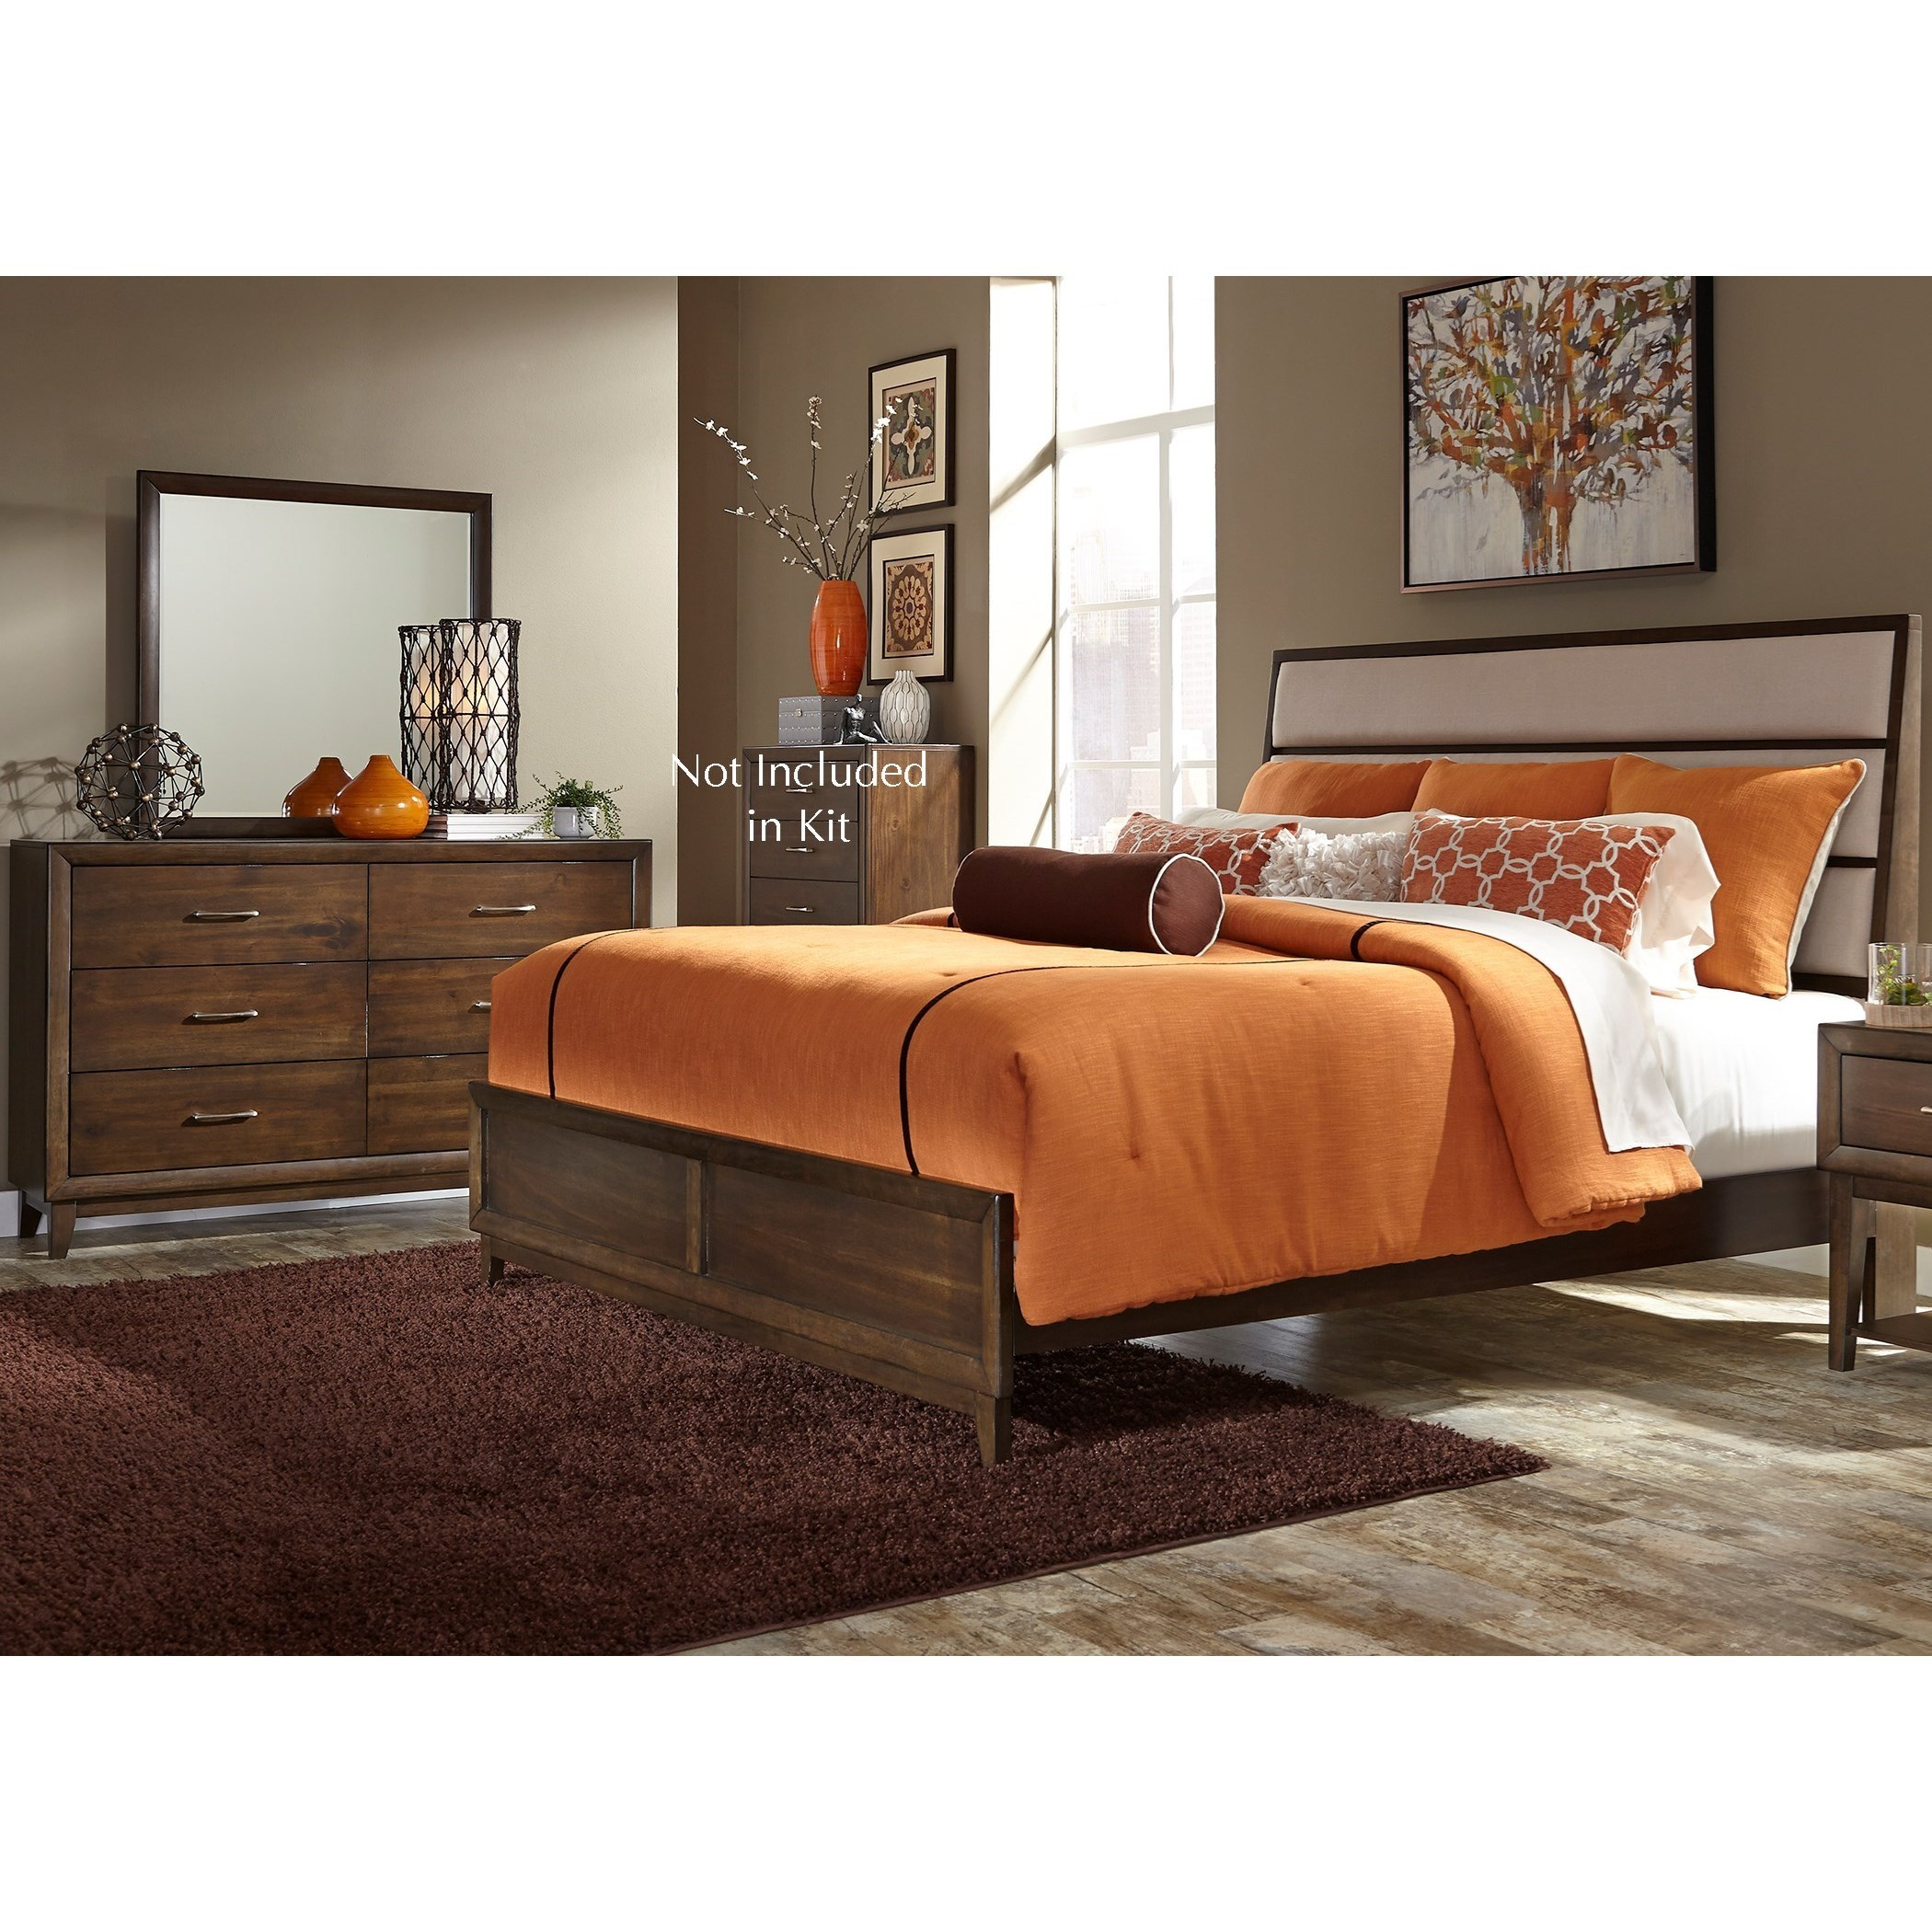 Liberty Furniture Hudson Square Bedroom Queen Bedroom Group | Royal  Furniture | Bedroom Groups